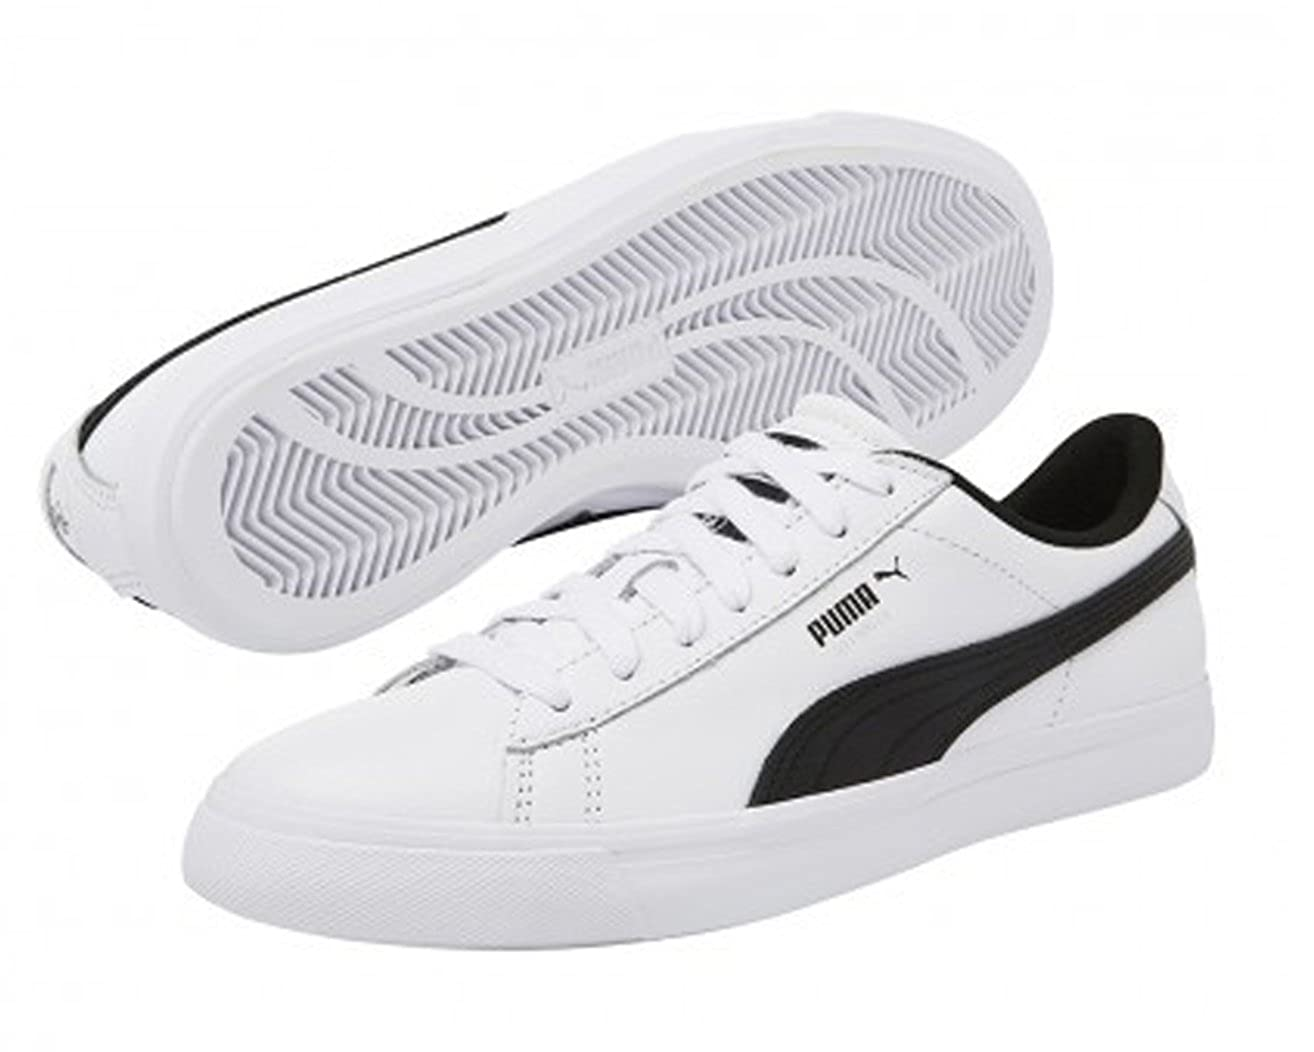 PUMA BTS x Collaboration Court Star (366202) B07B65BH3P 9 B(M) US